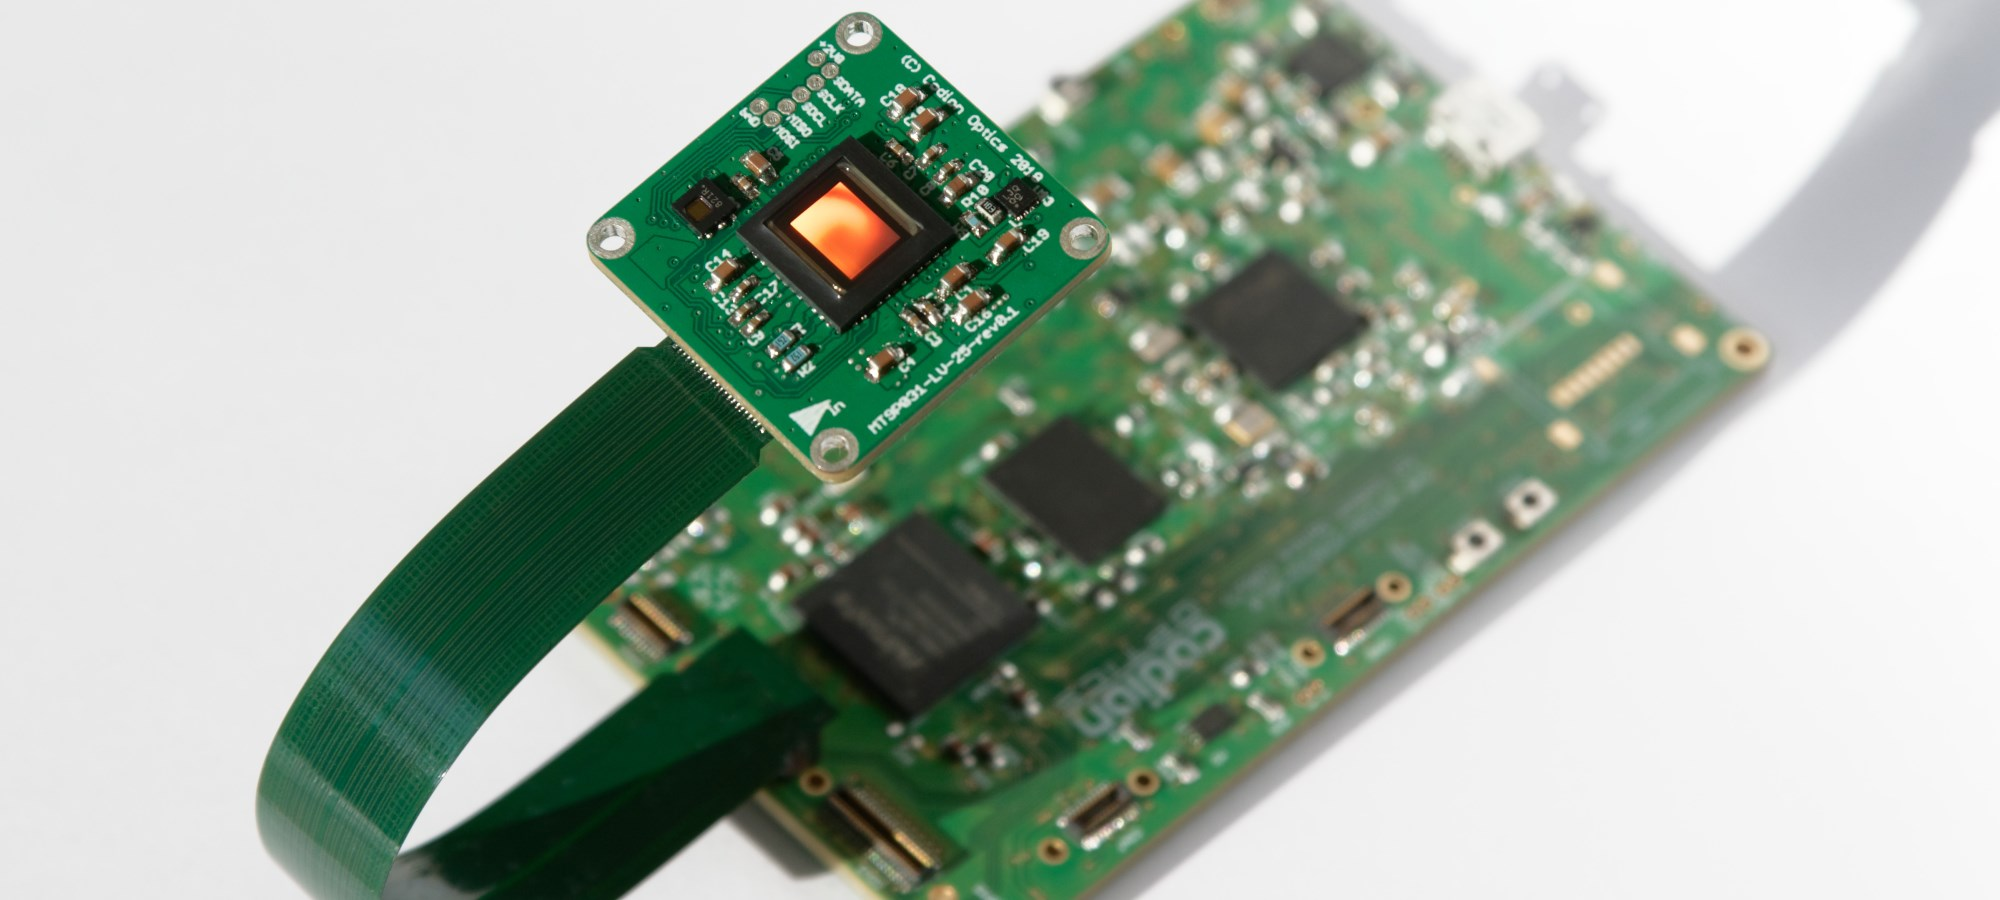 Embedded MCU-FPGA board with attached OnSemi image sensor board